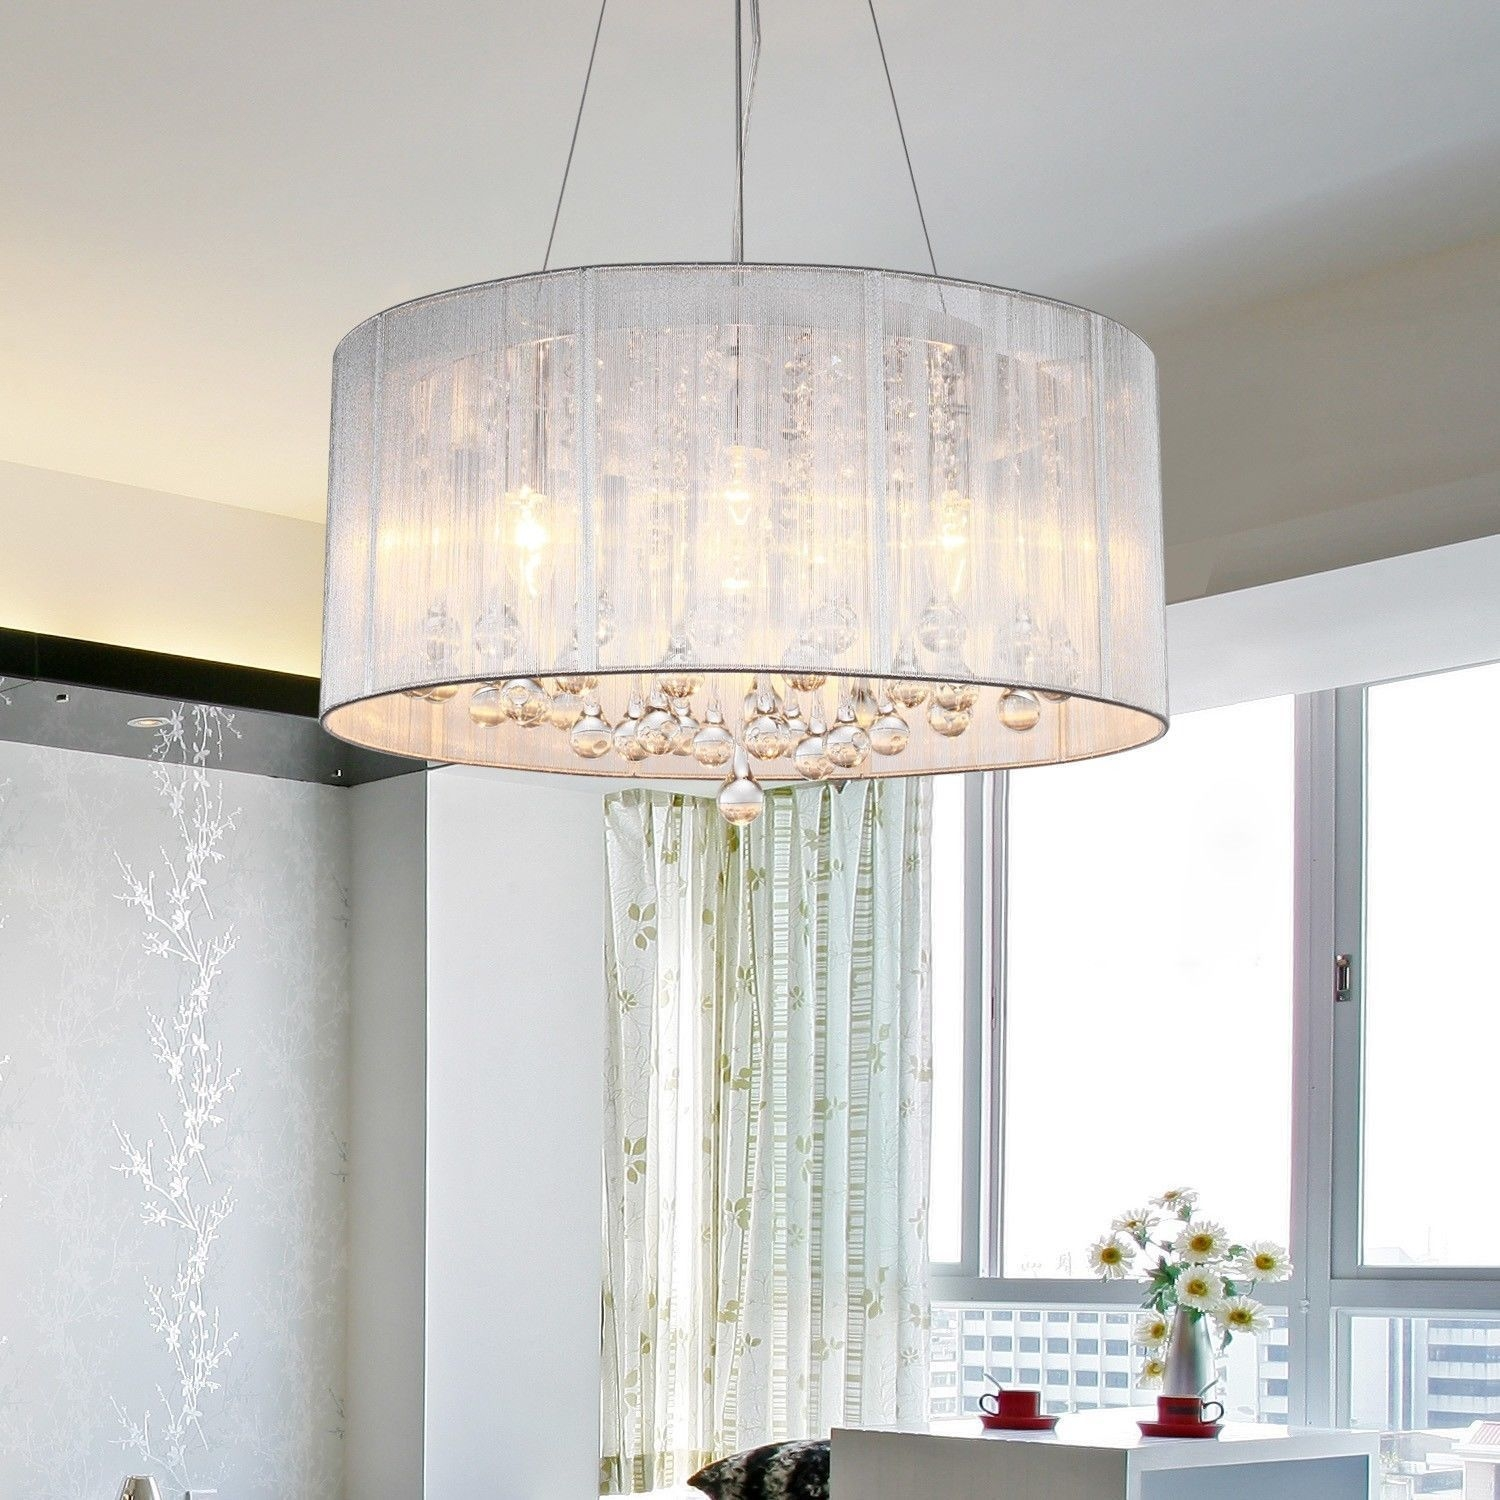 Very Awesome Lamp Shade Chandelier Best Home Decor Inspirations Intended For Drum Lamp Shades For Chandeliers (View 10 of 25)